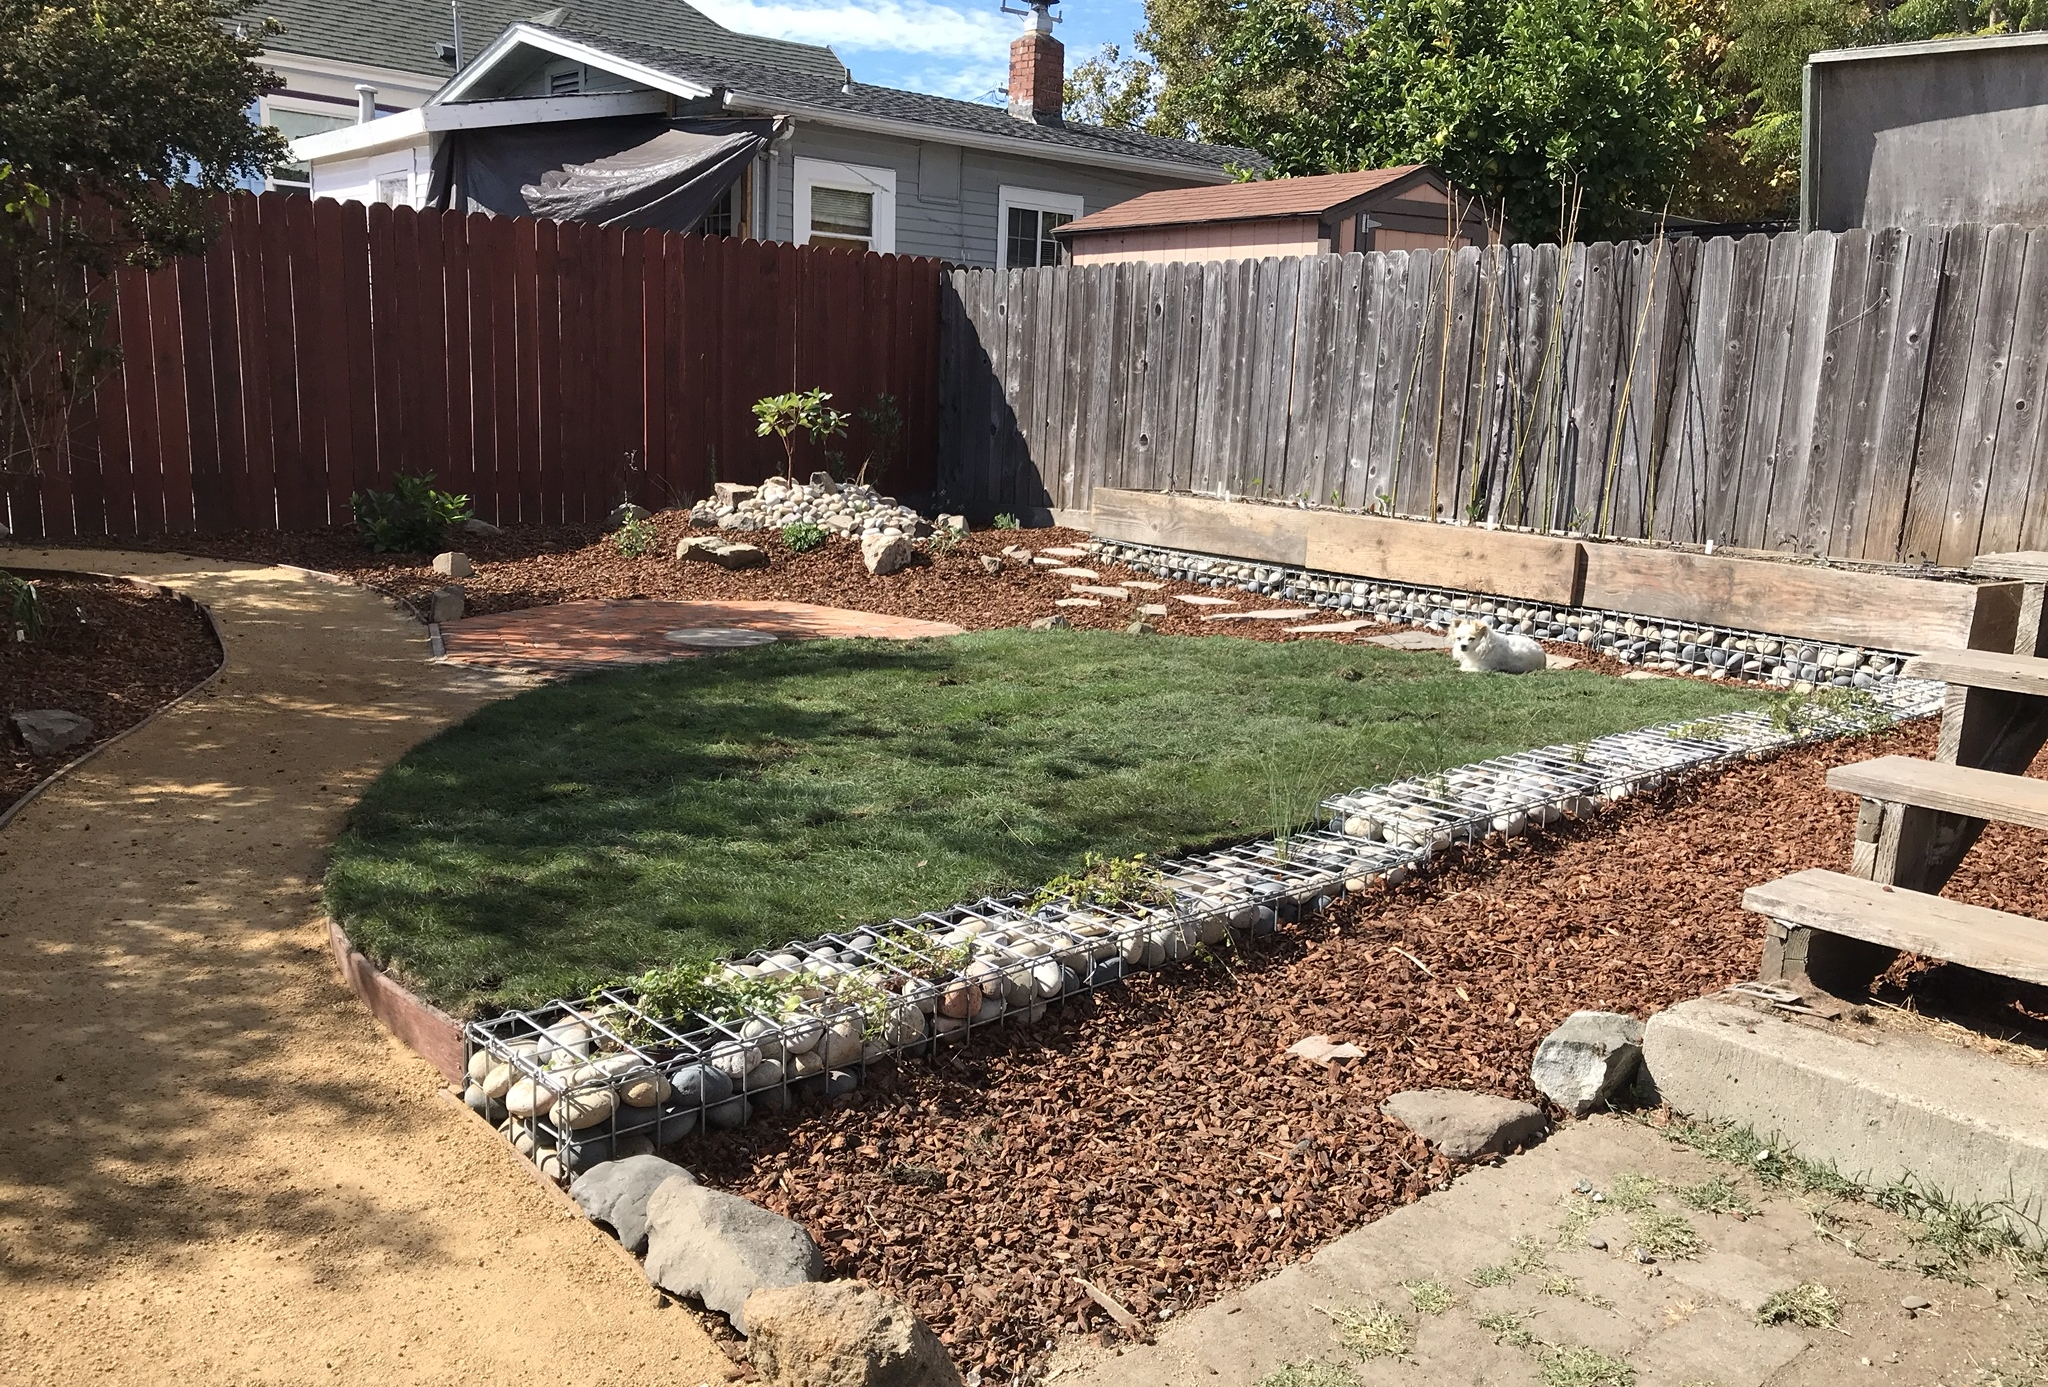 This was an exciting project that completely transformed this backyard in Berkeley from an unusable space into a CA Native plant oasis. We used bricks onsite to build an octagonal brick patio, lumber onsite to build a custom veggie bed, created a mound to plant a Madrone tree, Manzanita, Buckwheat, sage and purple needle grass, and planted woodland species under the Oak overstory. The lawn is a native drought tolerant species of Agrostis Pallens.